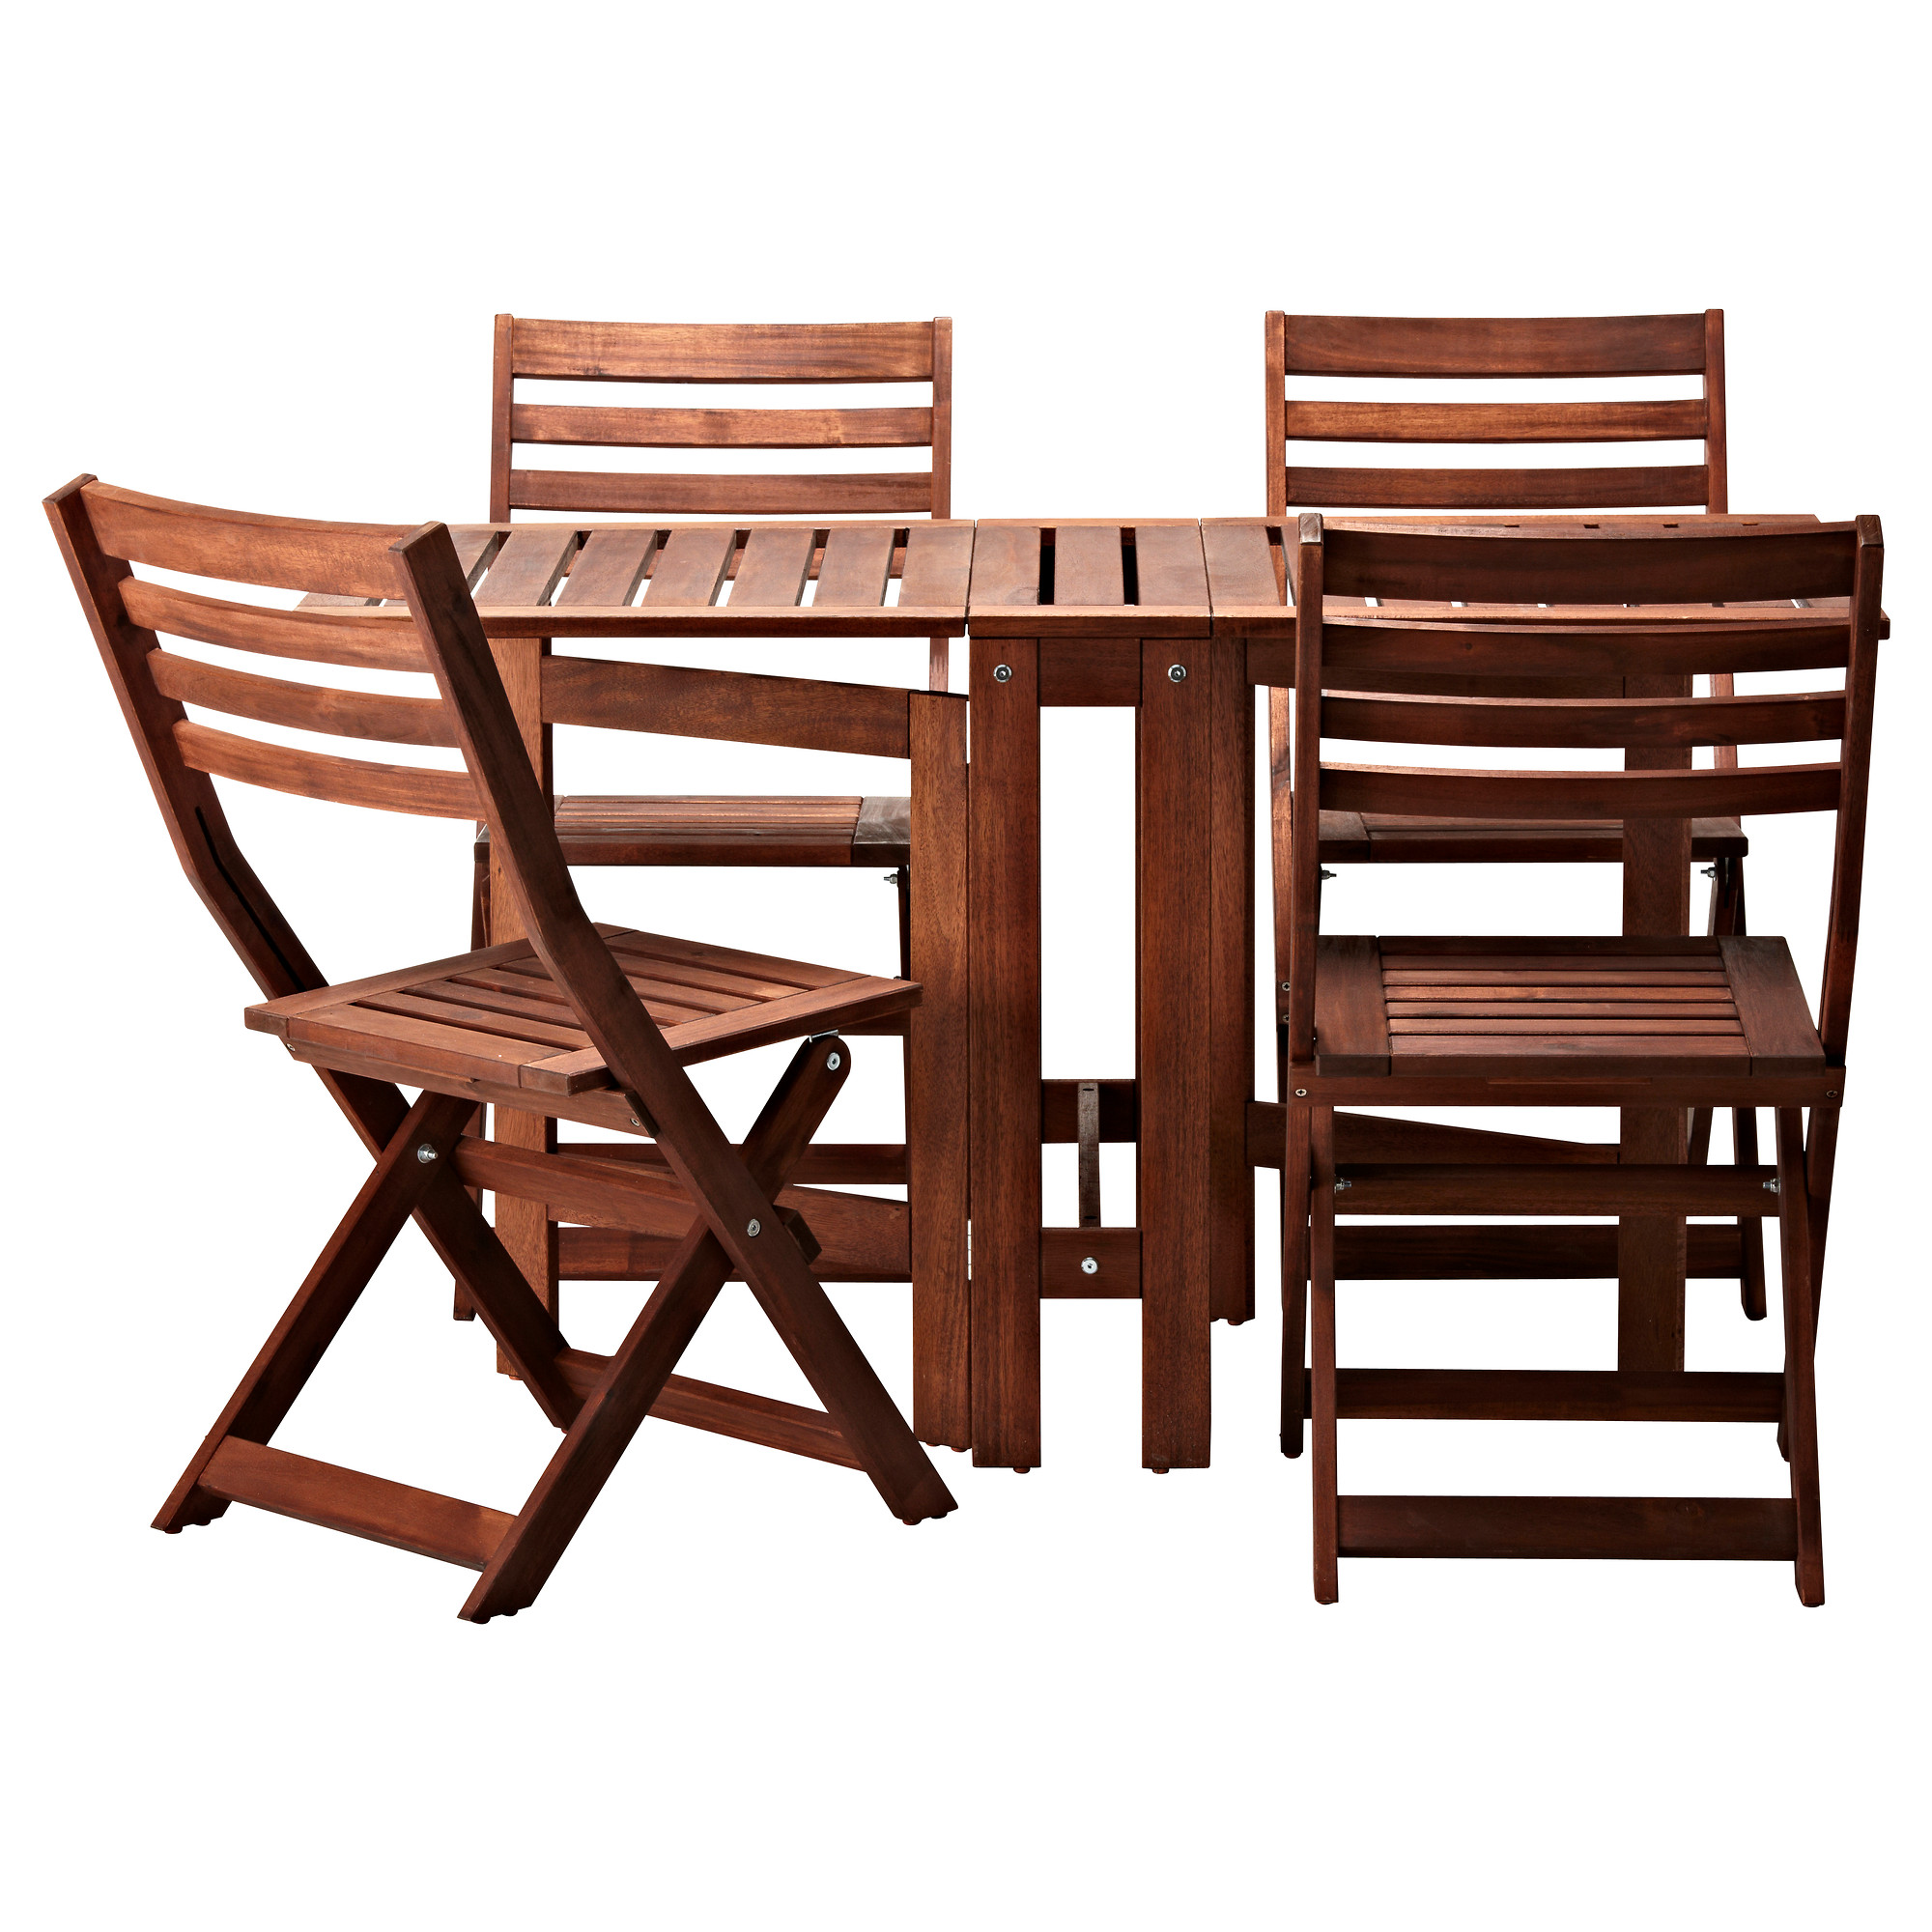 Stunning ÄPPLARÖ table and 4 folding chairs, outdoor, brown brown stained folding wooden garden furniture sets